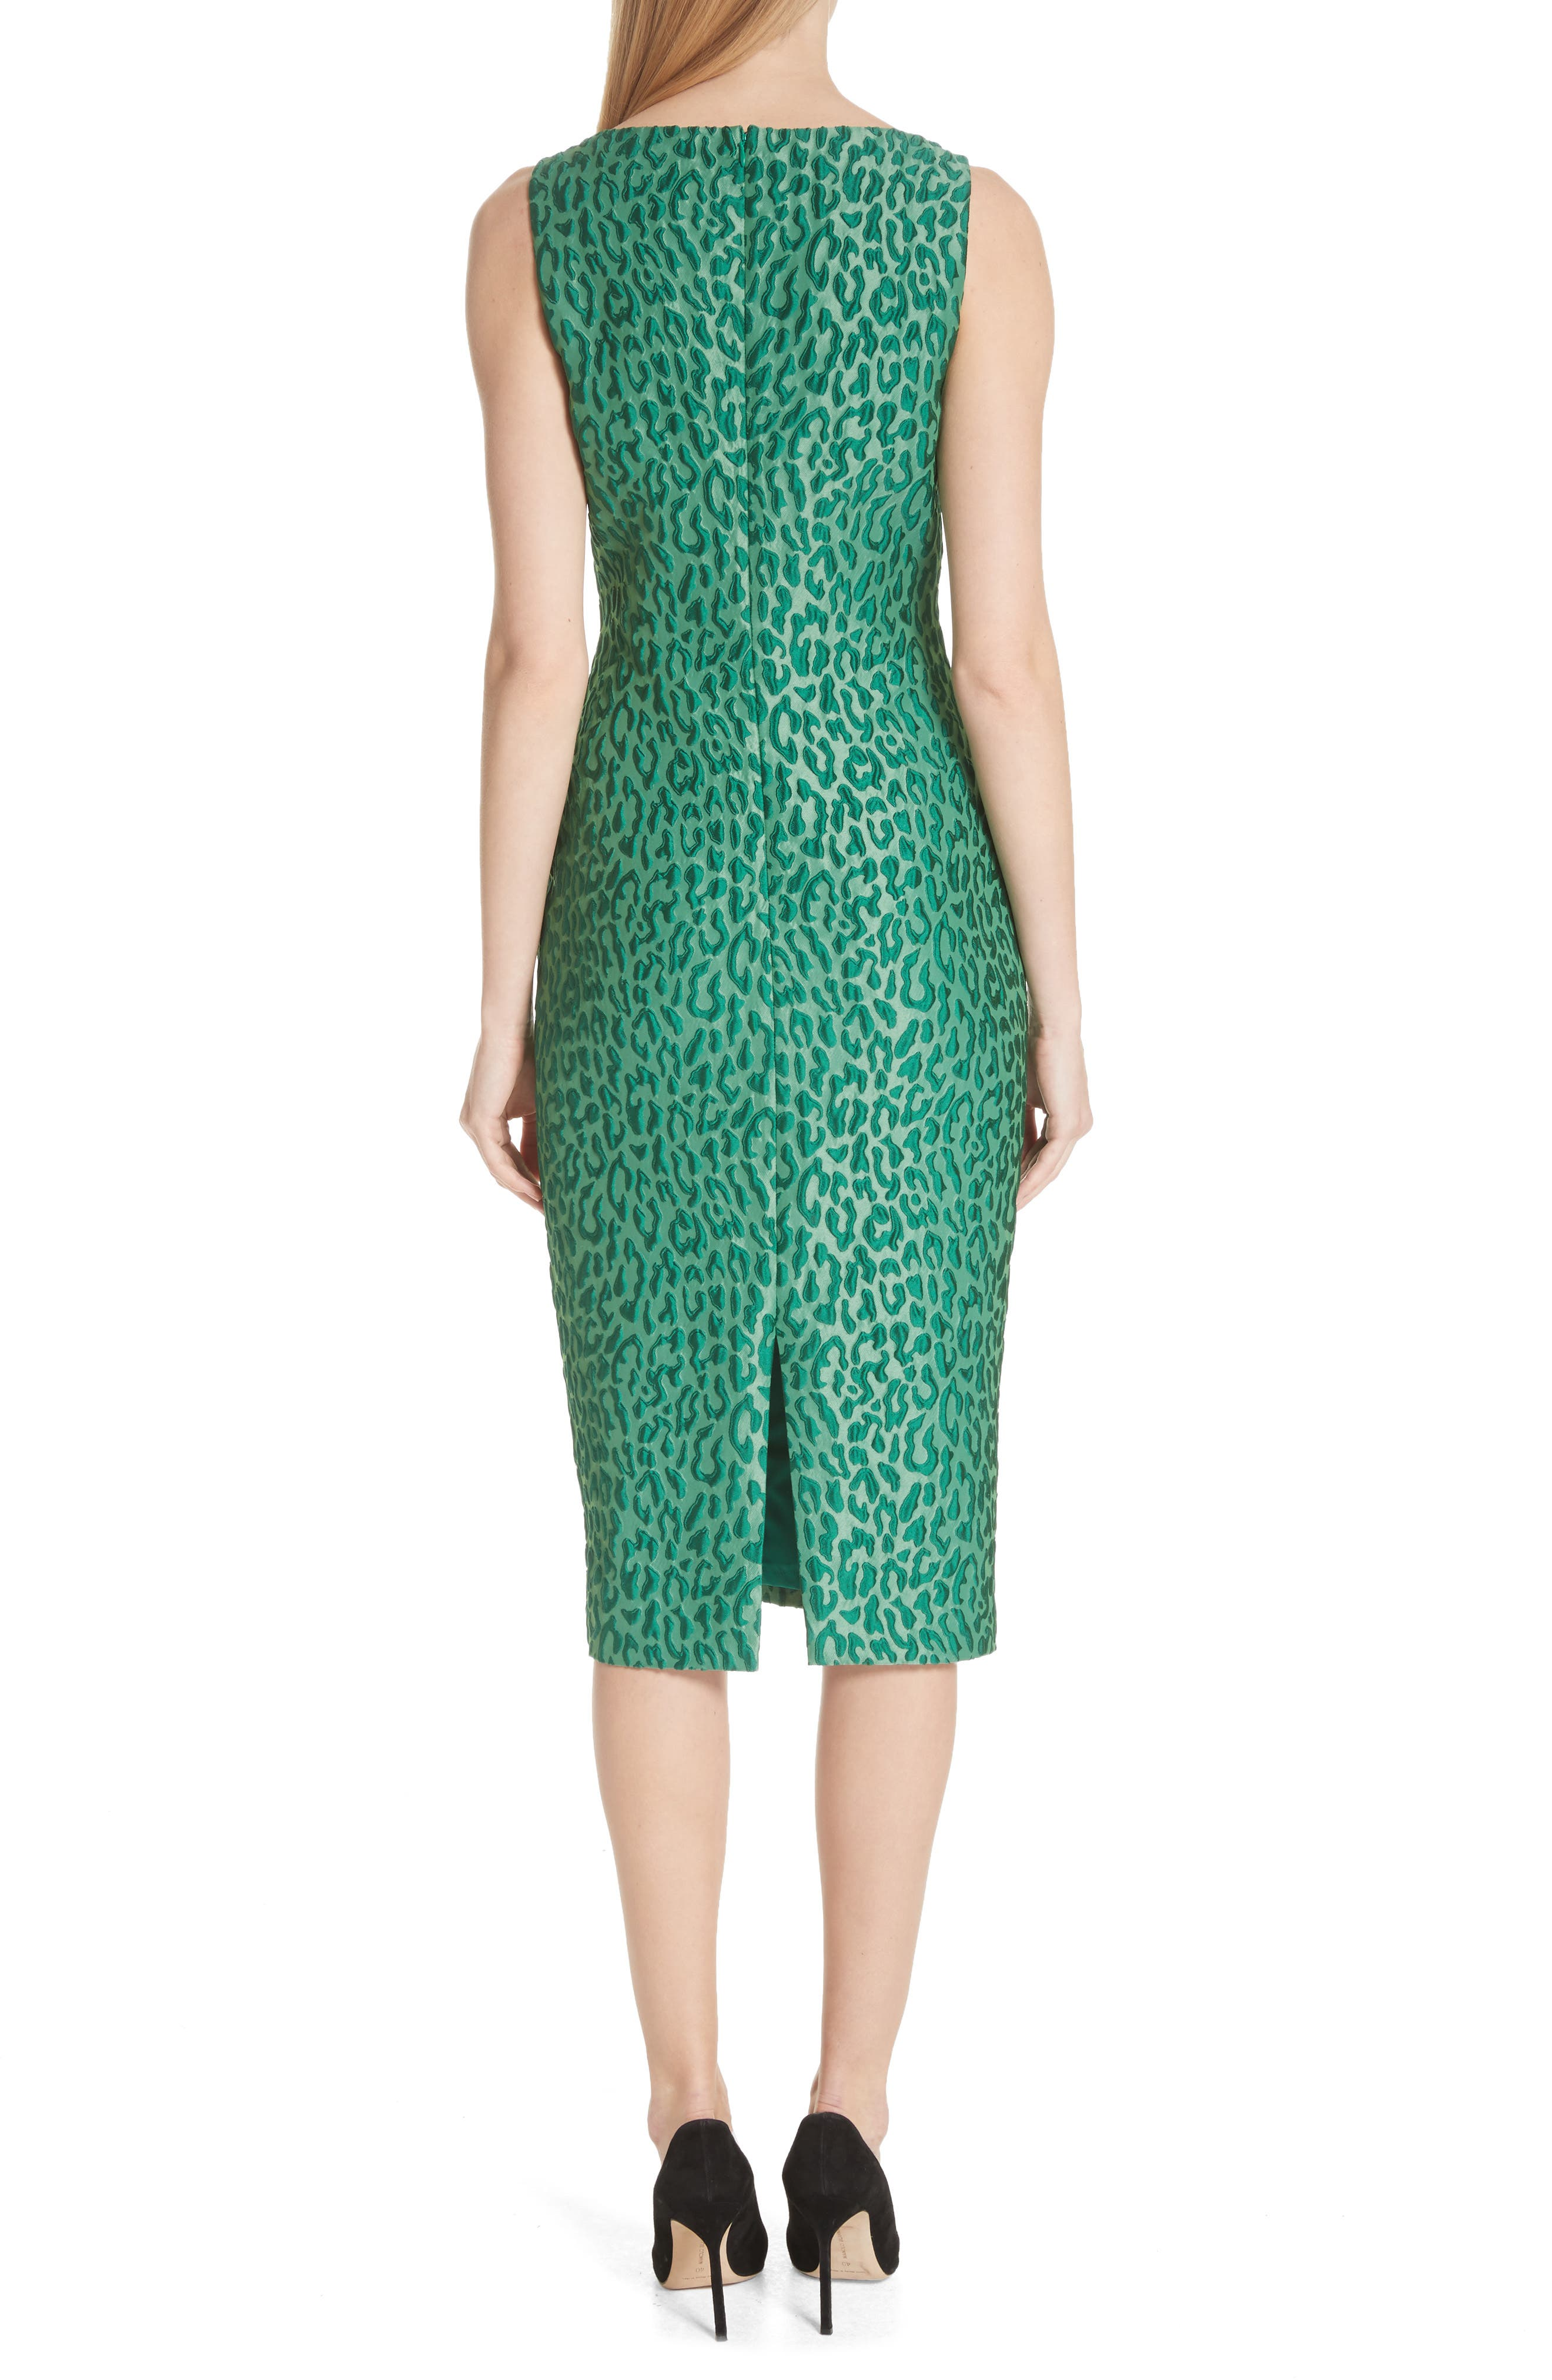 Leopard Jacquard Sheath Dress,                             Alternate thumbnail 2, color,                             Green